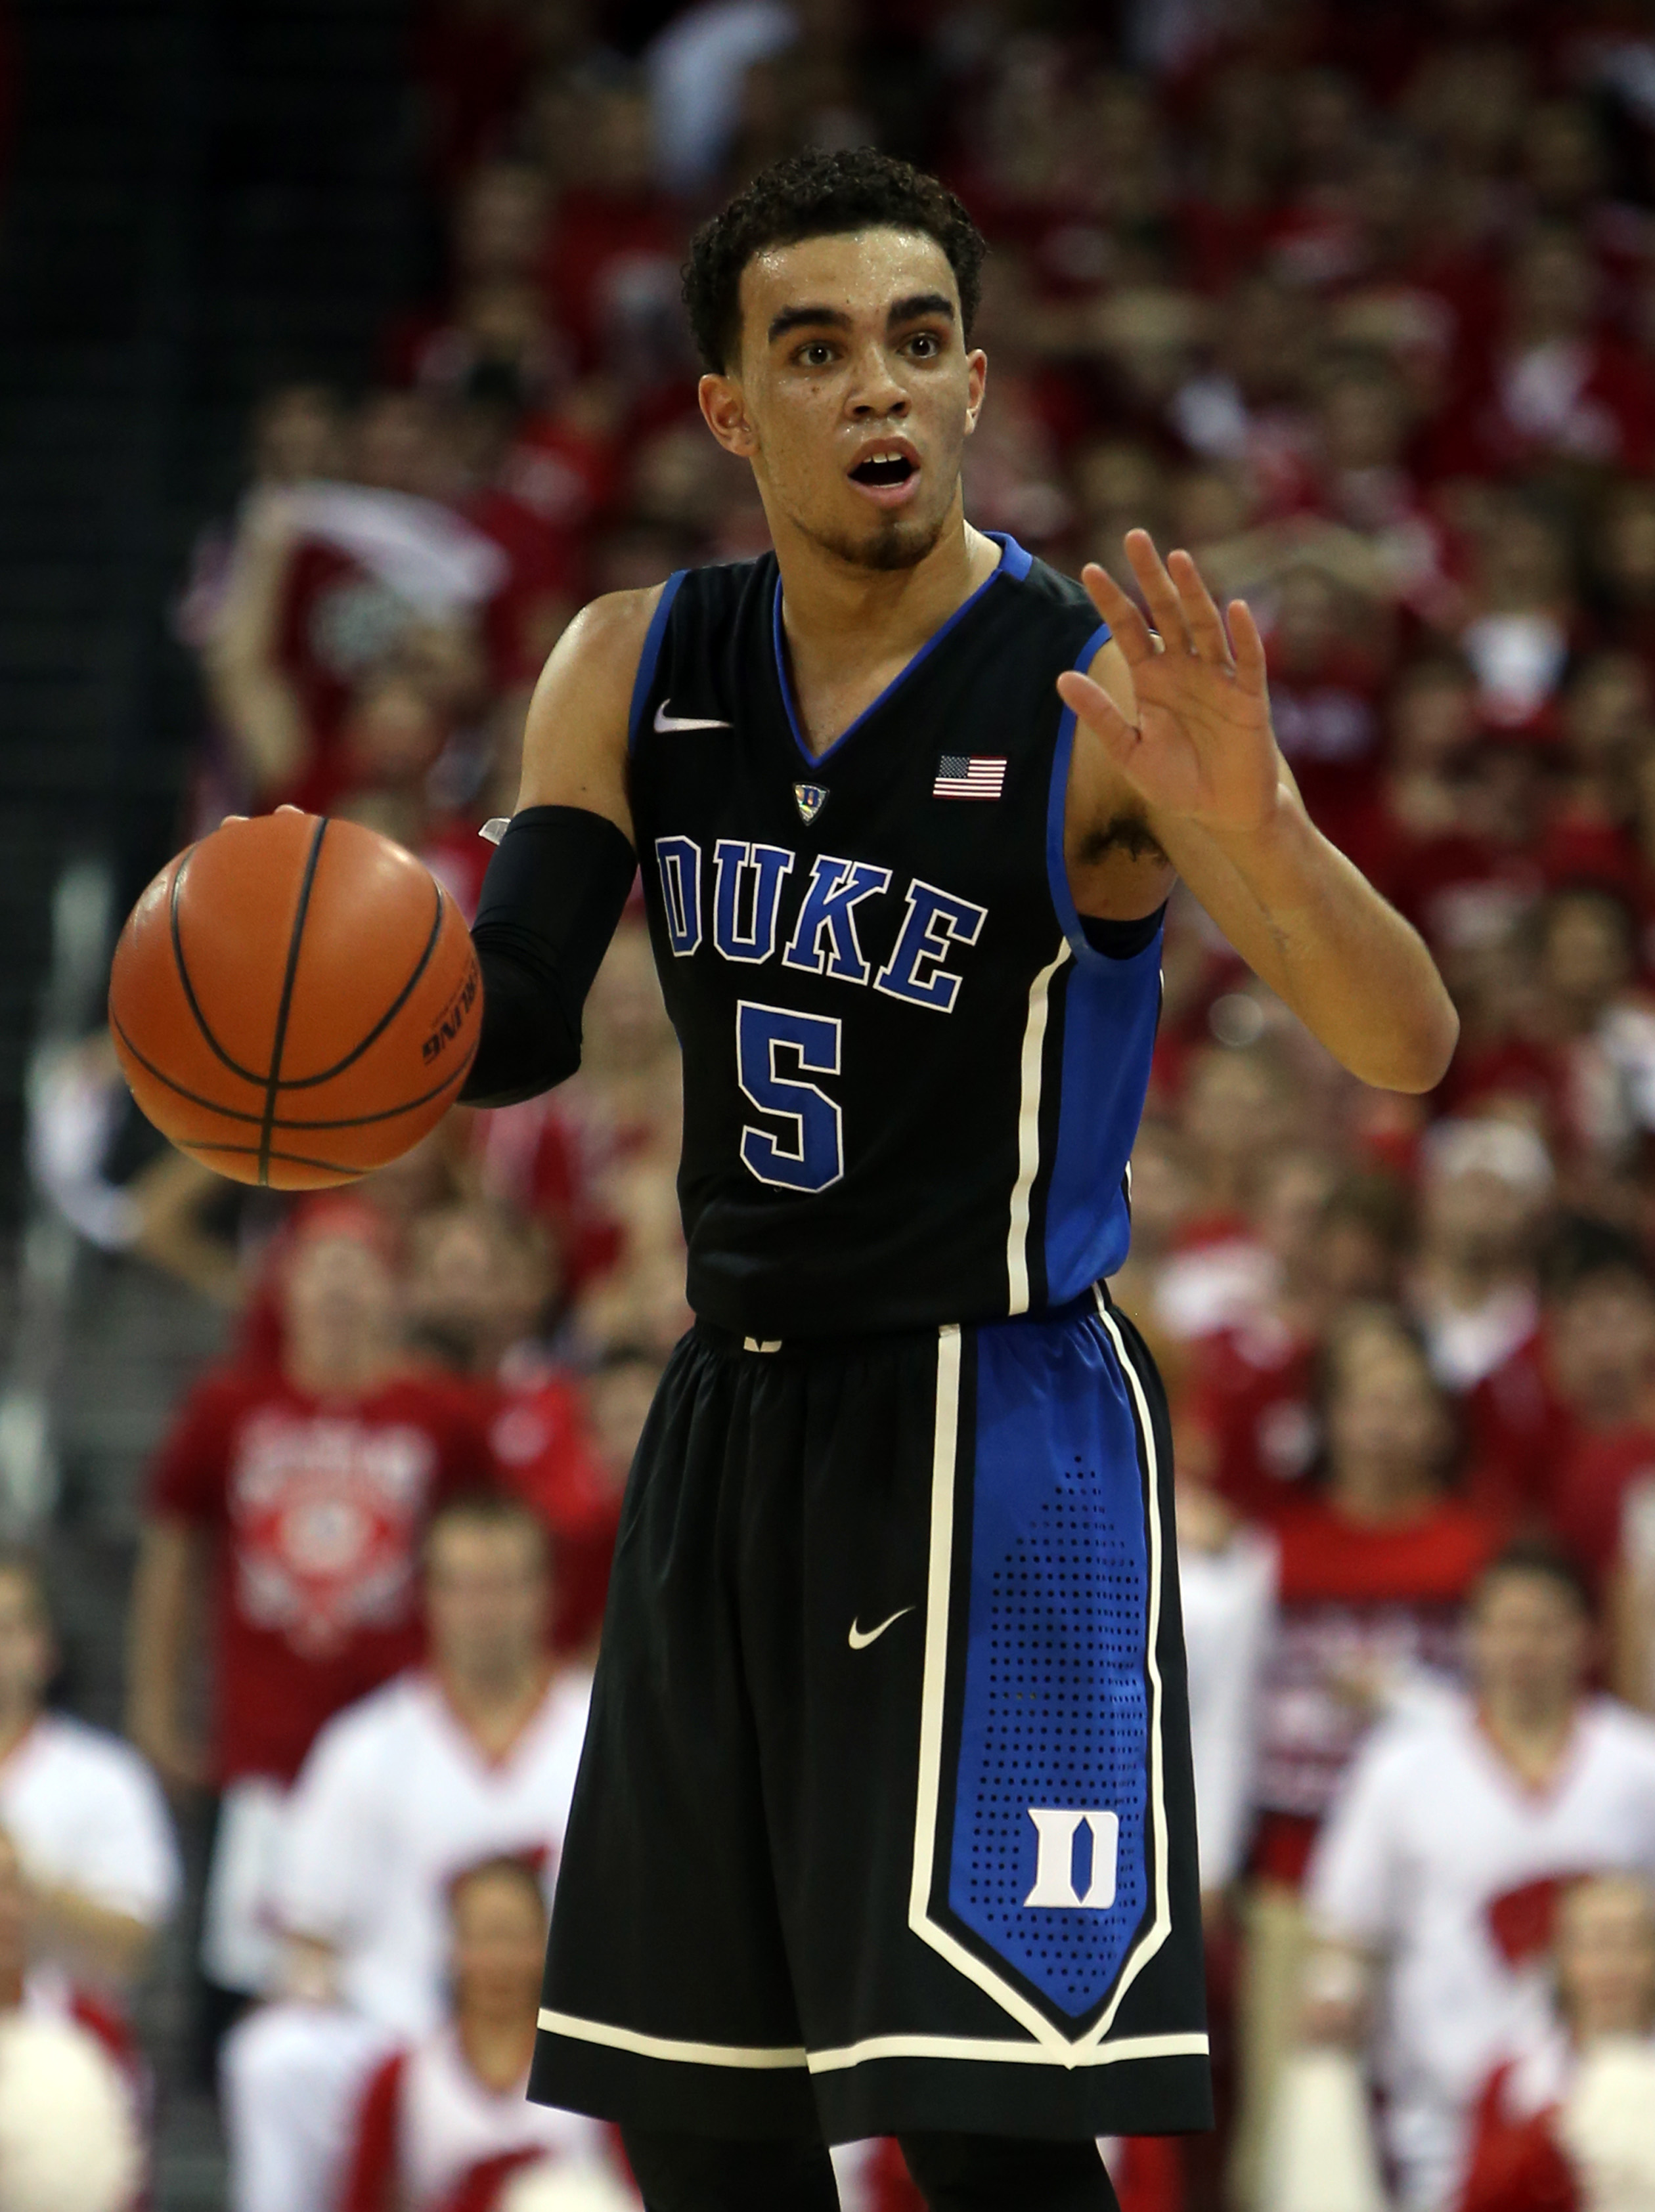 Dec 3, 2014; Madison, WI, USA; Duke Blue Devils guard Tyus Jones (5) signals to his team as they play the Wisconsin Badgers at the Kohl Center. Duke defeated Wisconsin 80-70. (Mary Langenfeld-USA TODAY Sports)